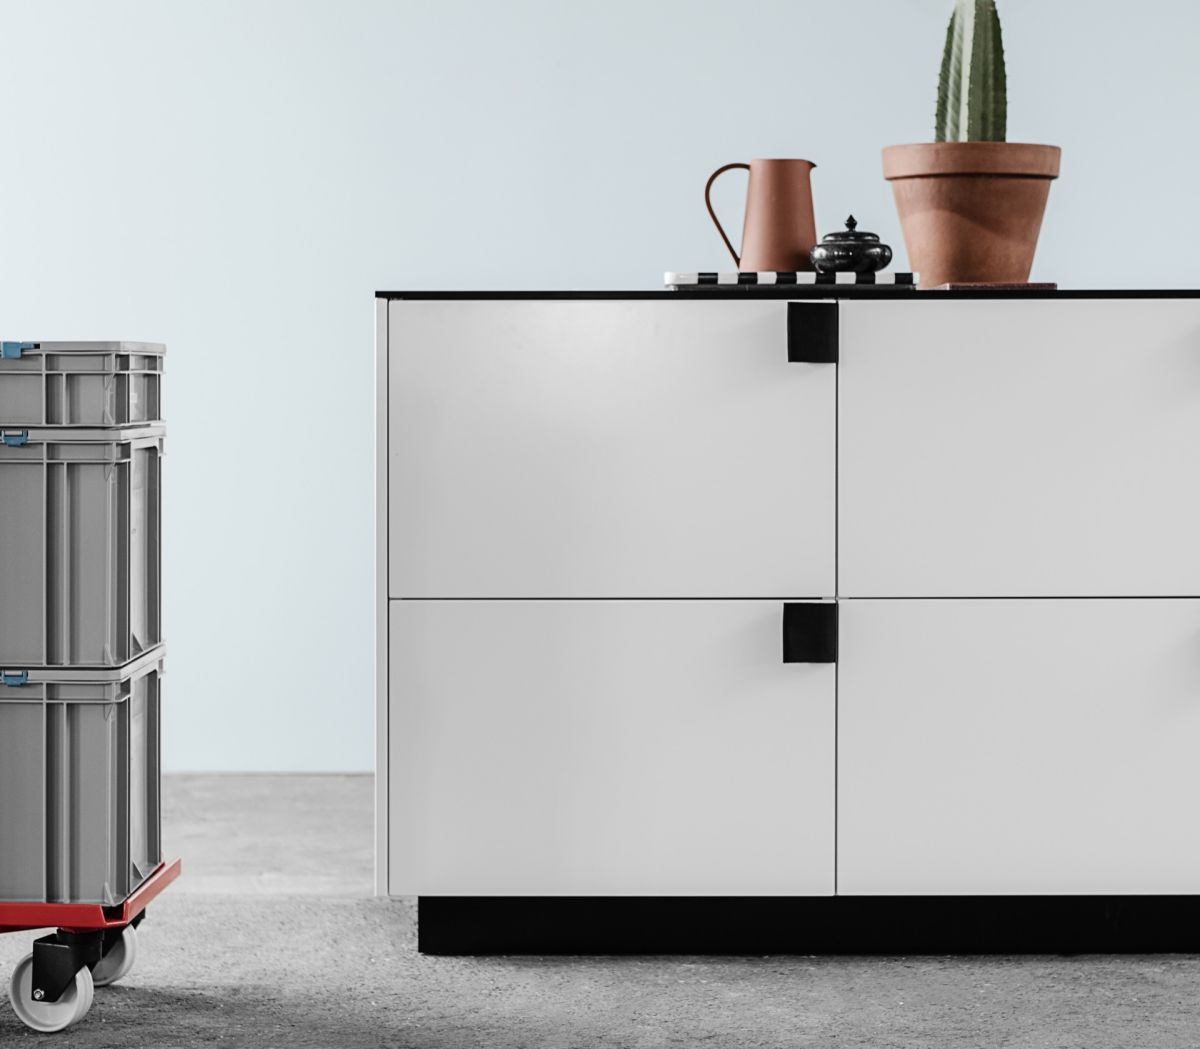 Design Van De Week Ikea Keuken Upgrade Door Big De Architect